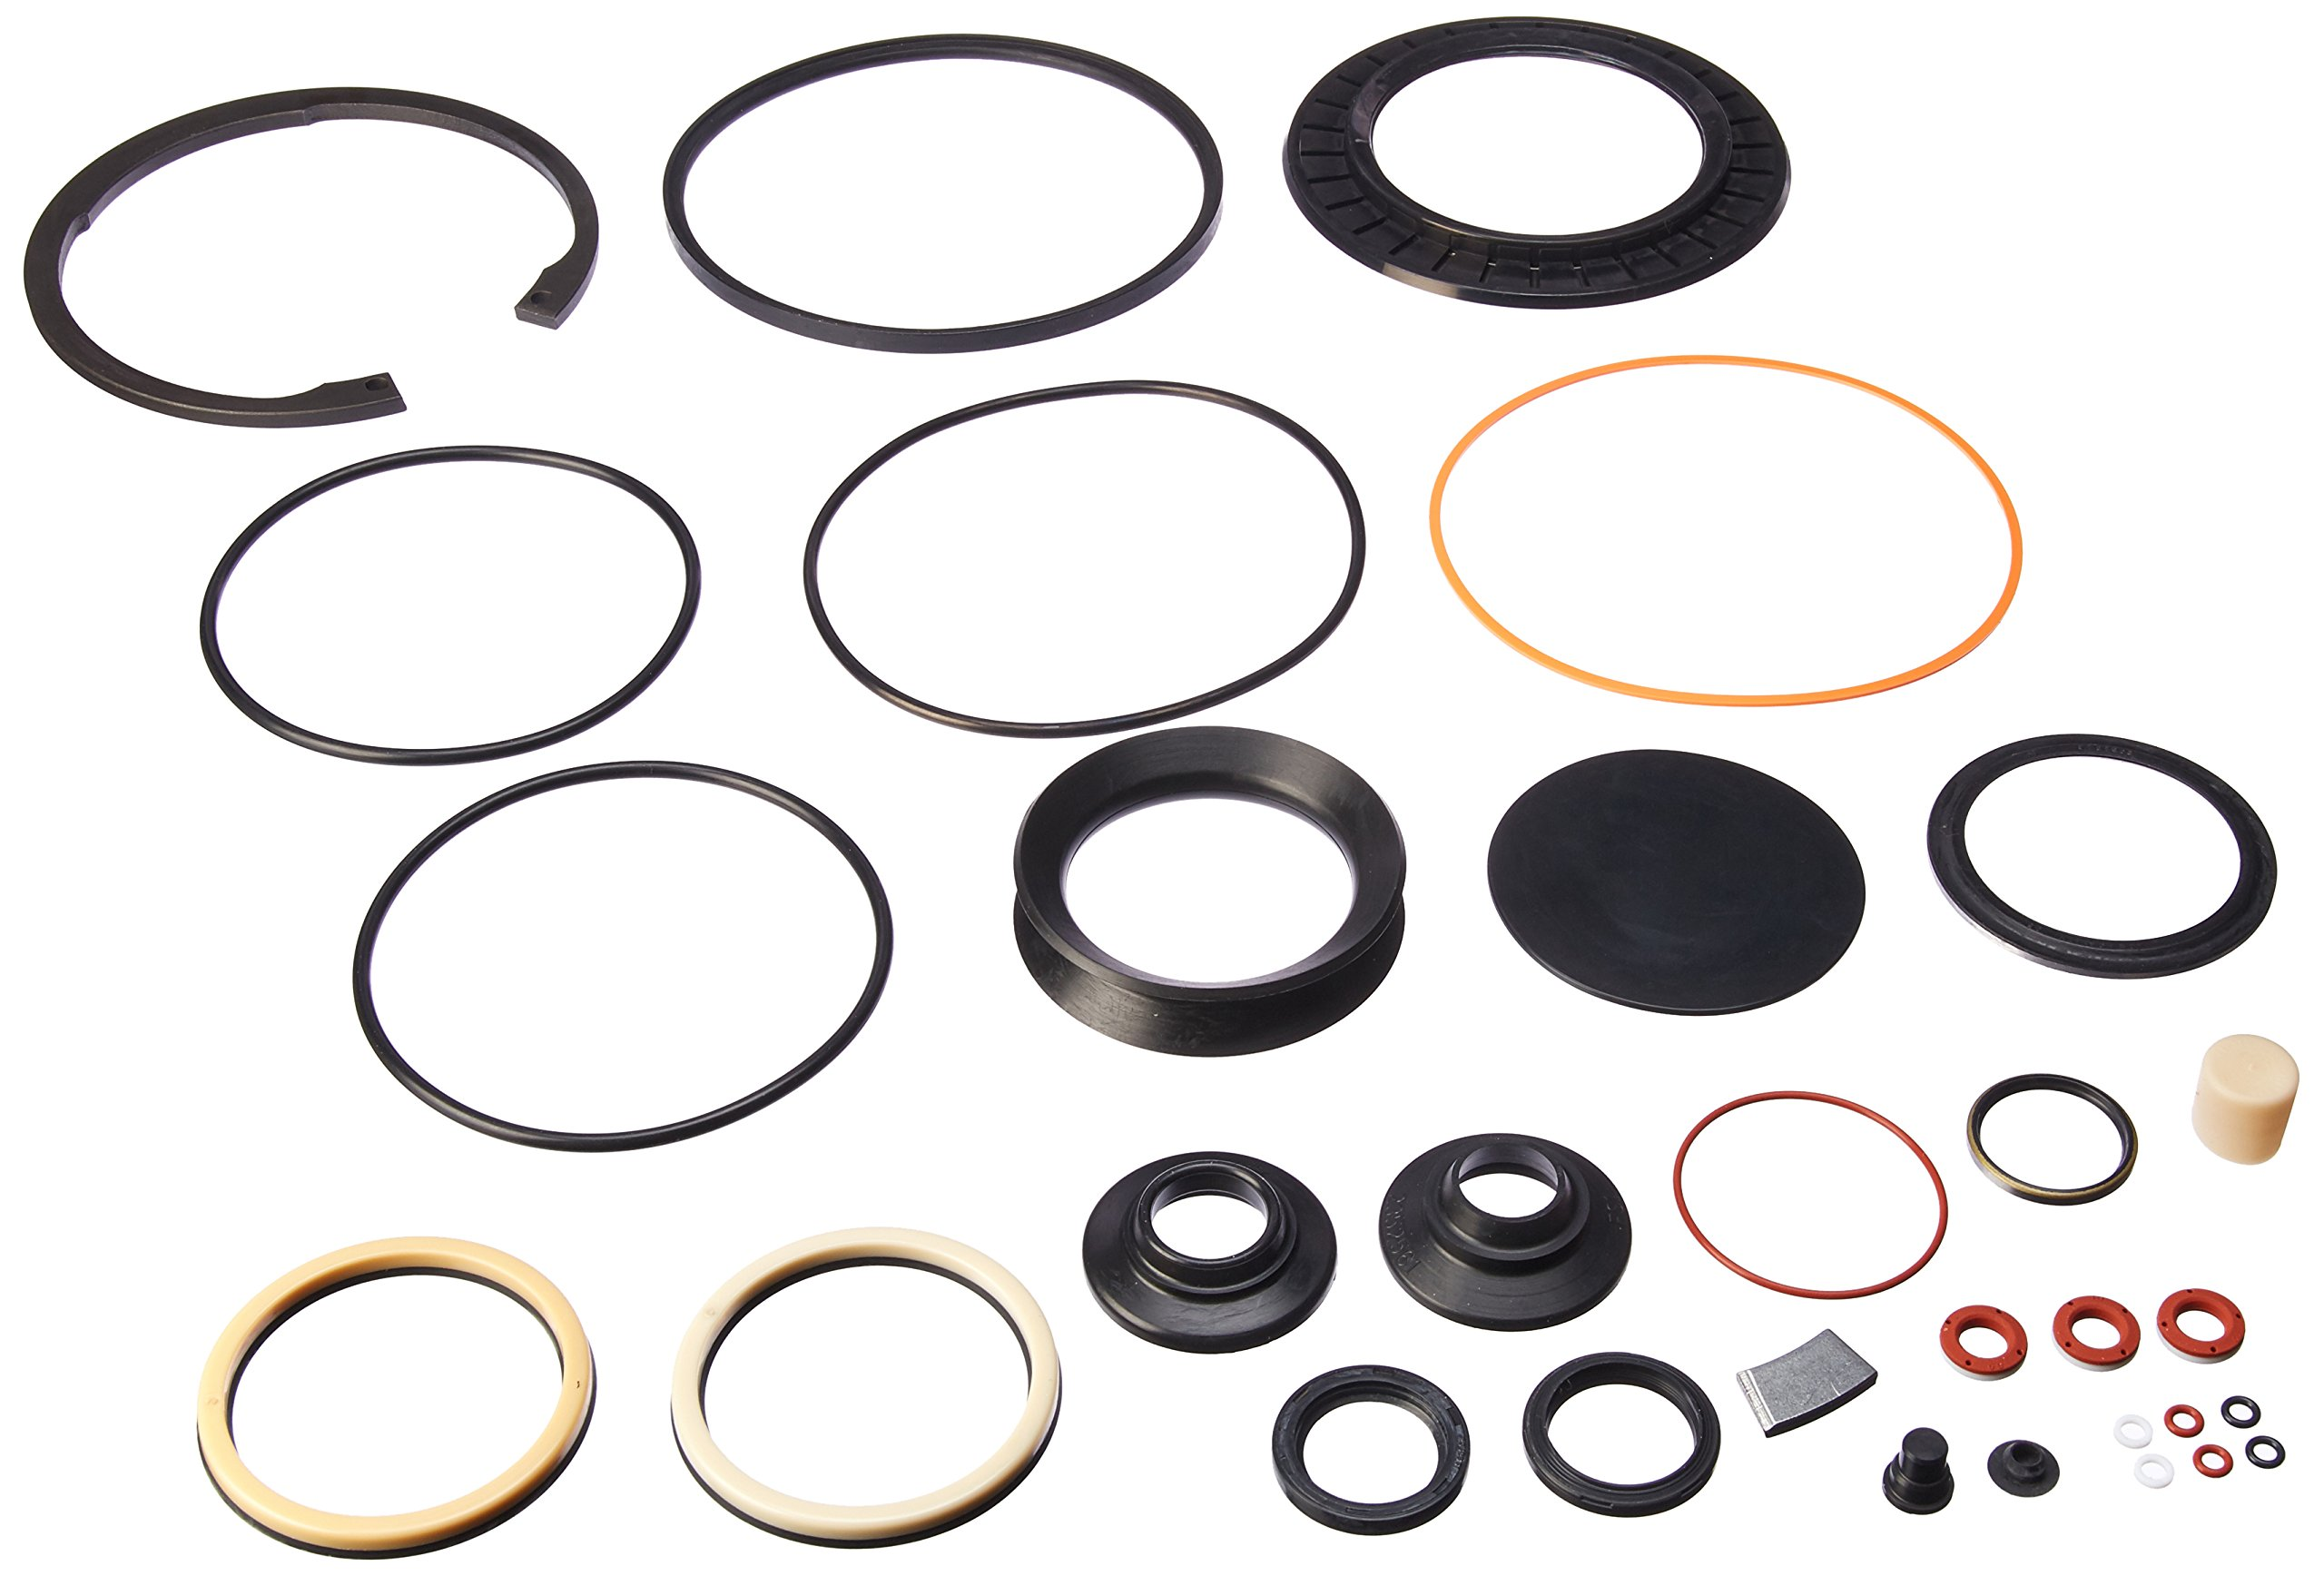 R. H. Sheppard 5545491 Combined Kit with Snap Ring and L-Seal (5544861, 5545481, 5544921)